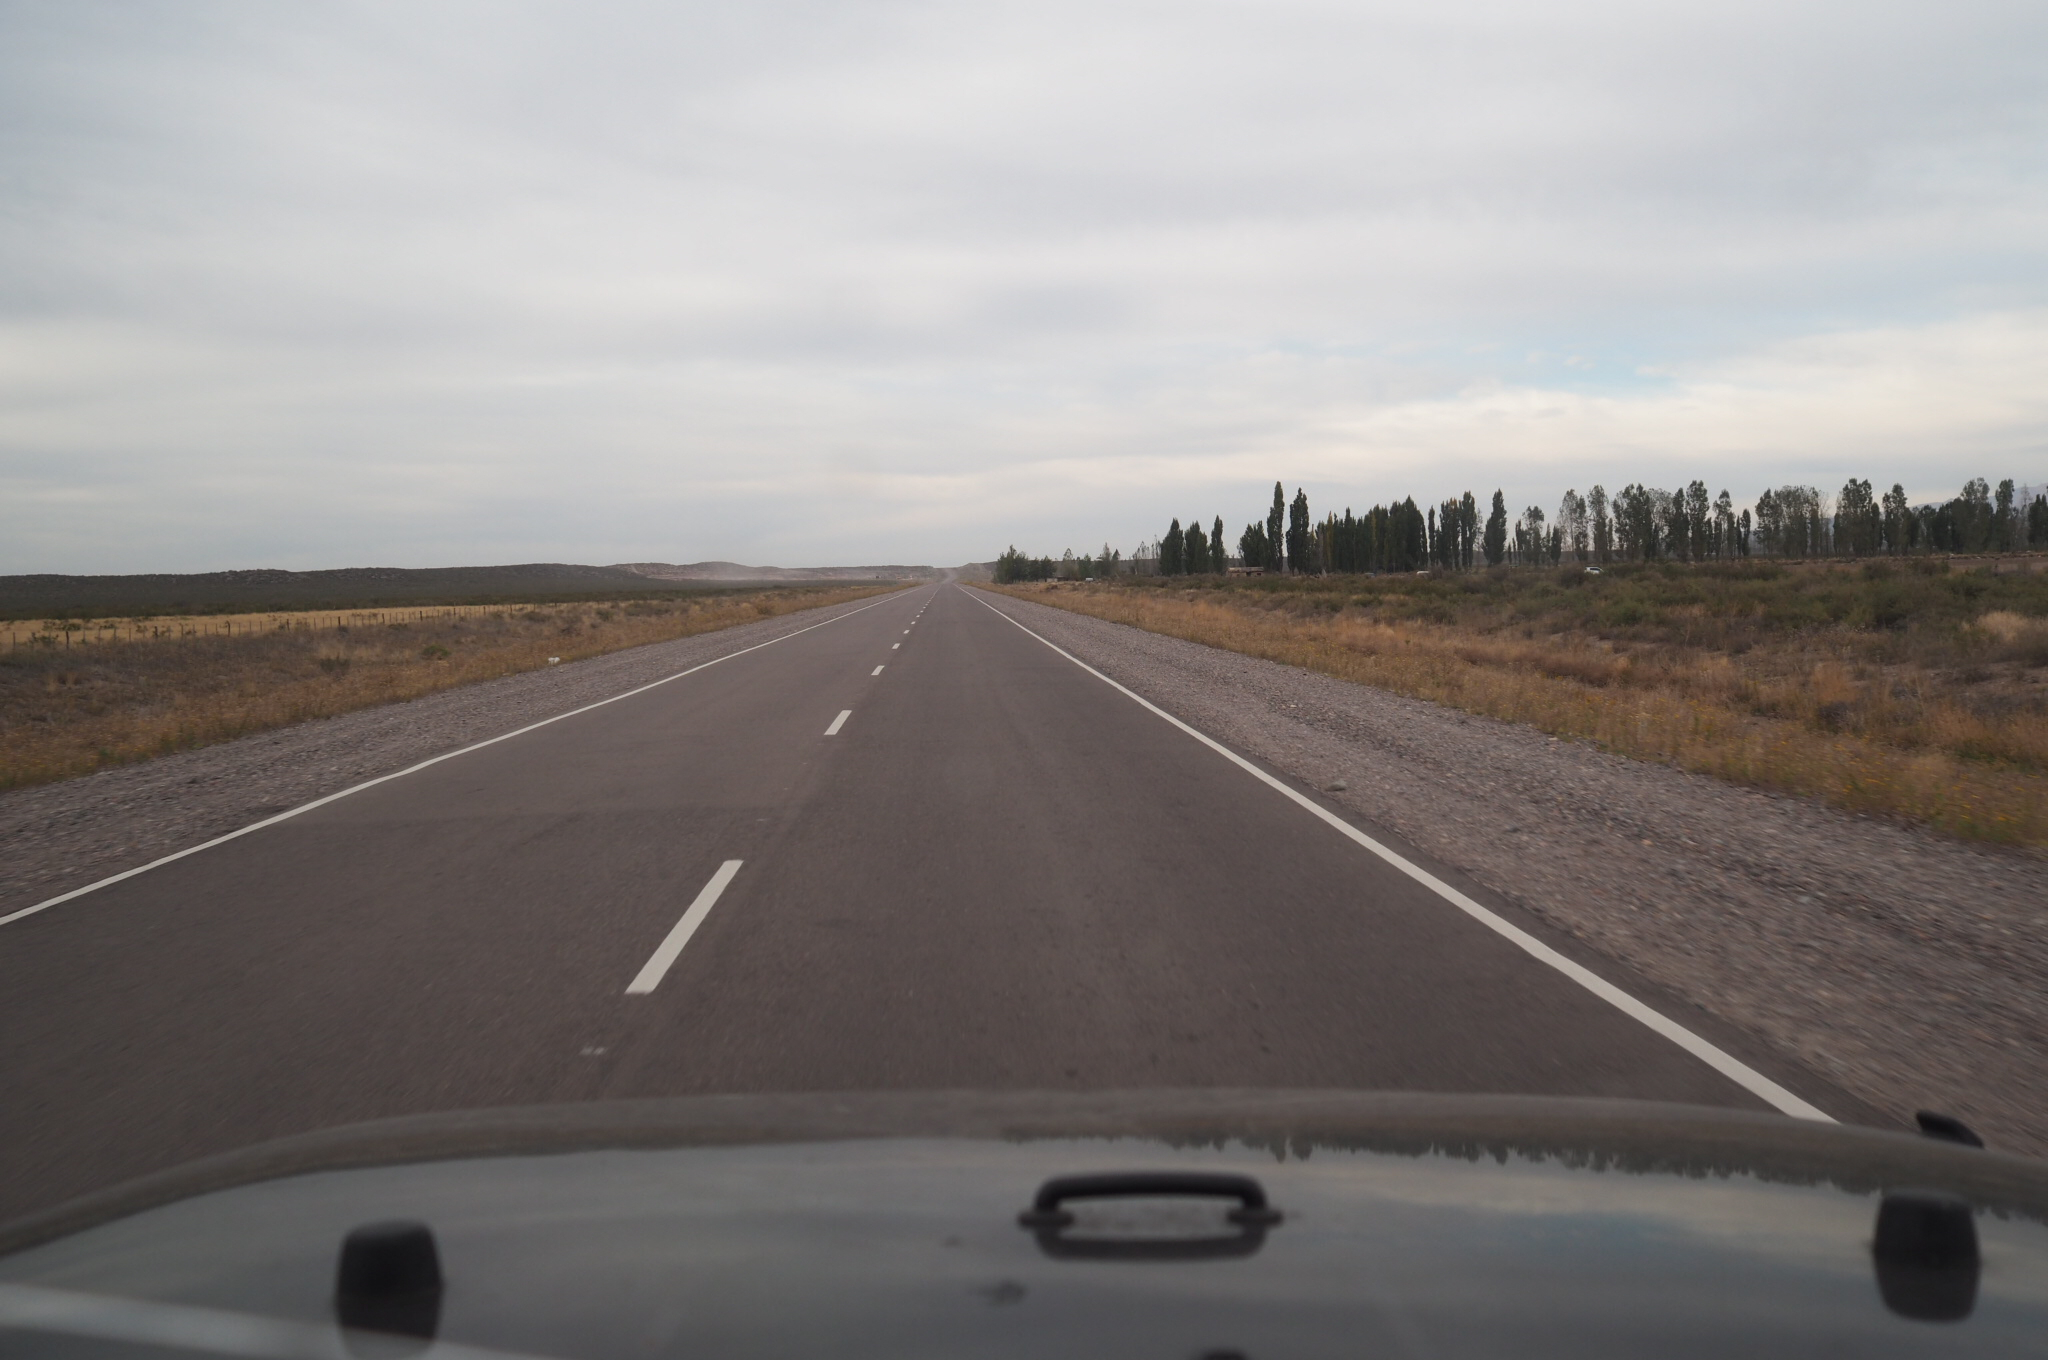 View of the highway in…I forgot. Argentina maybe?